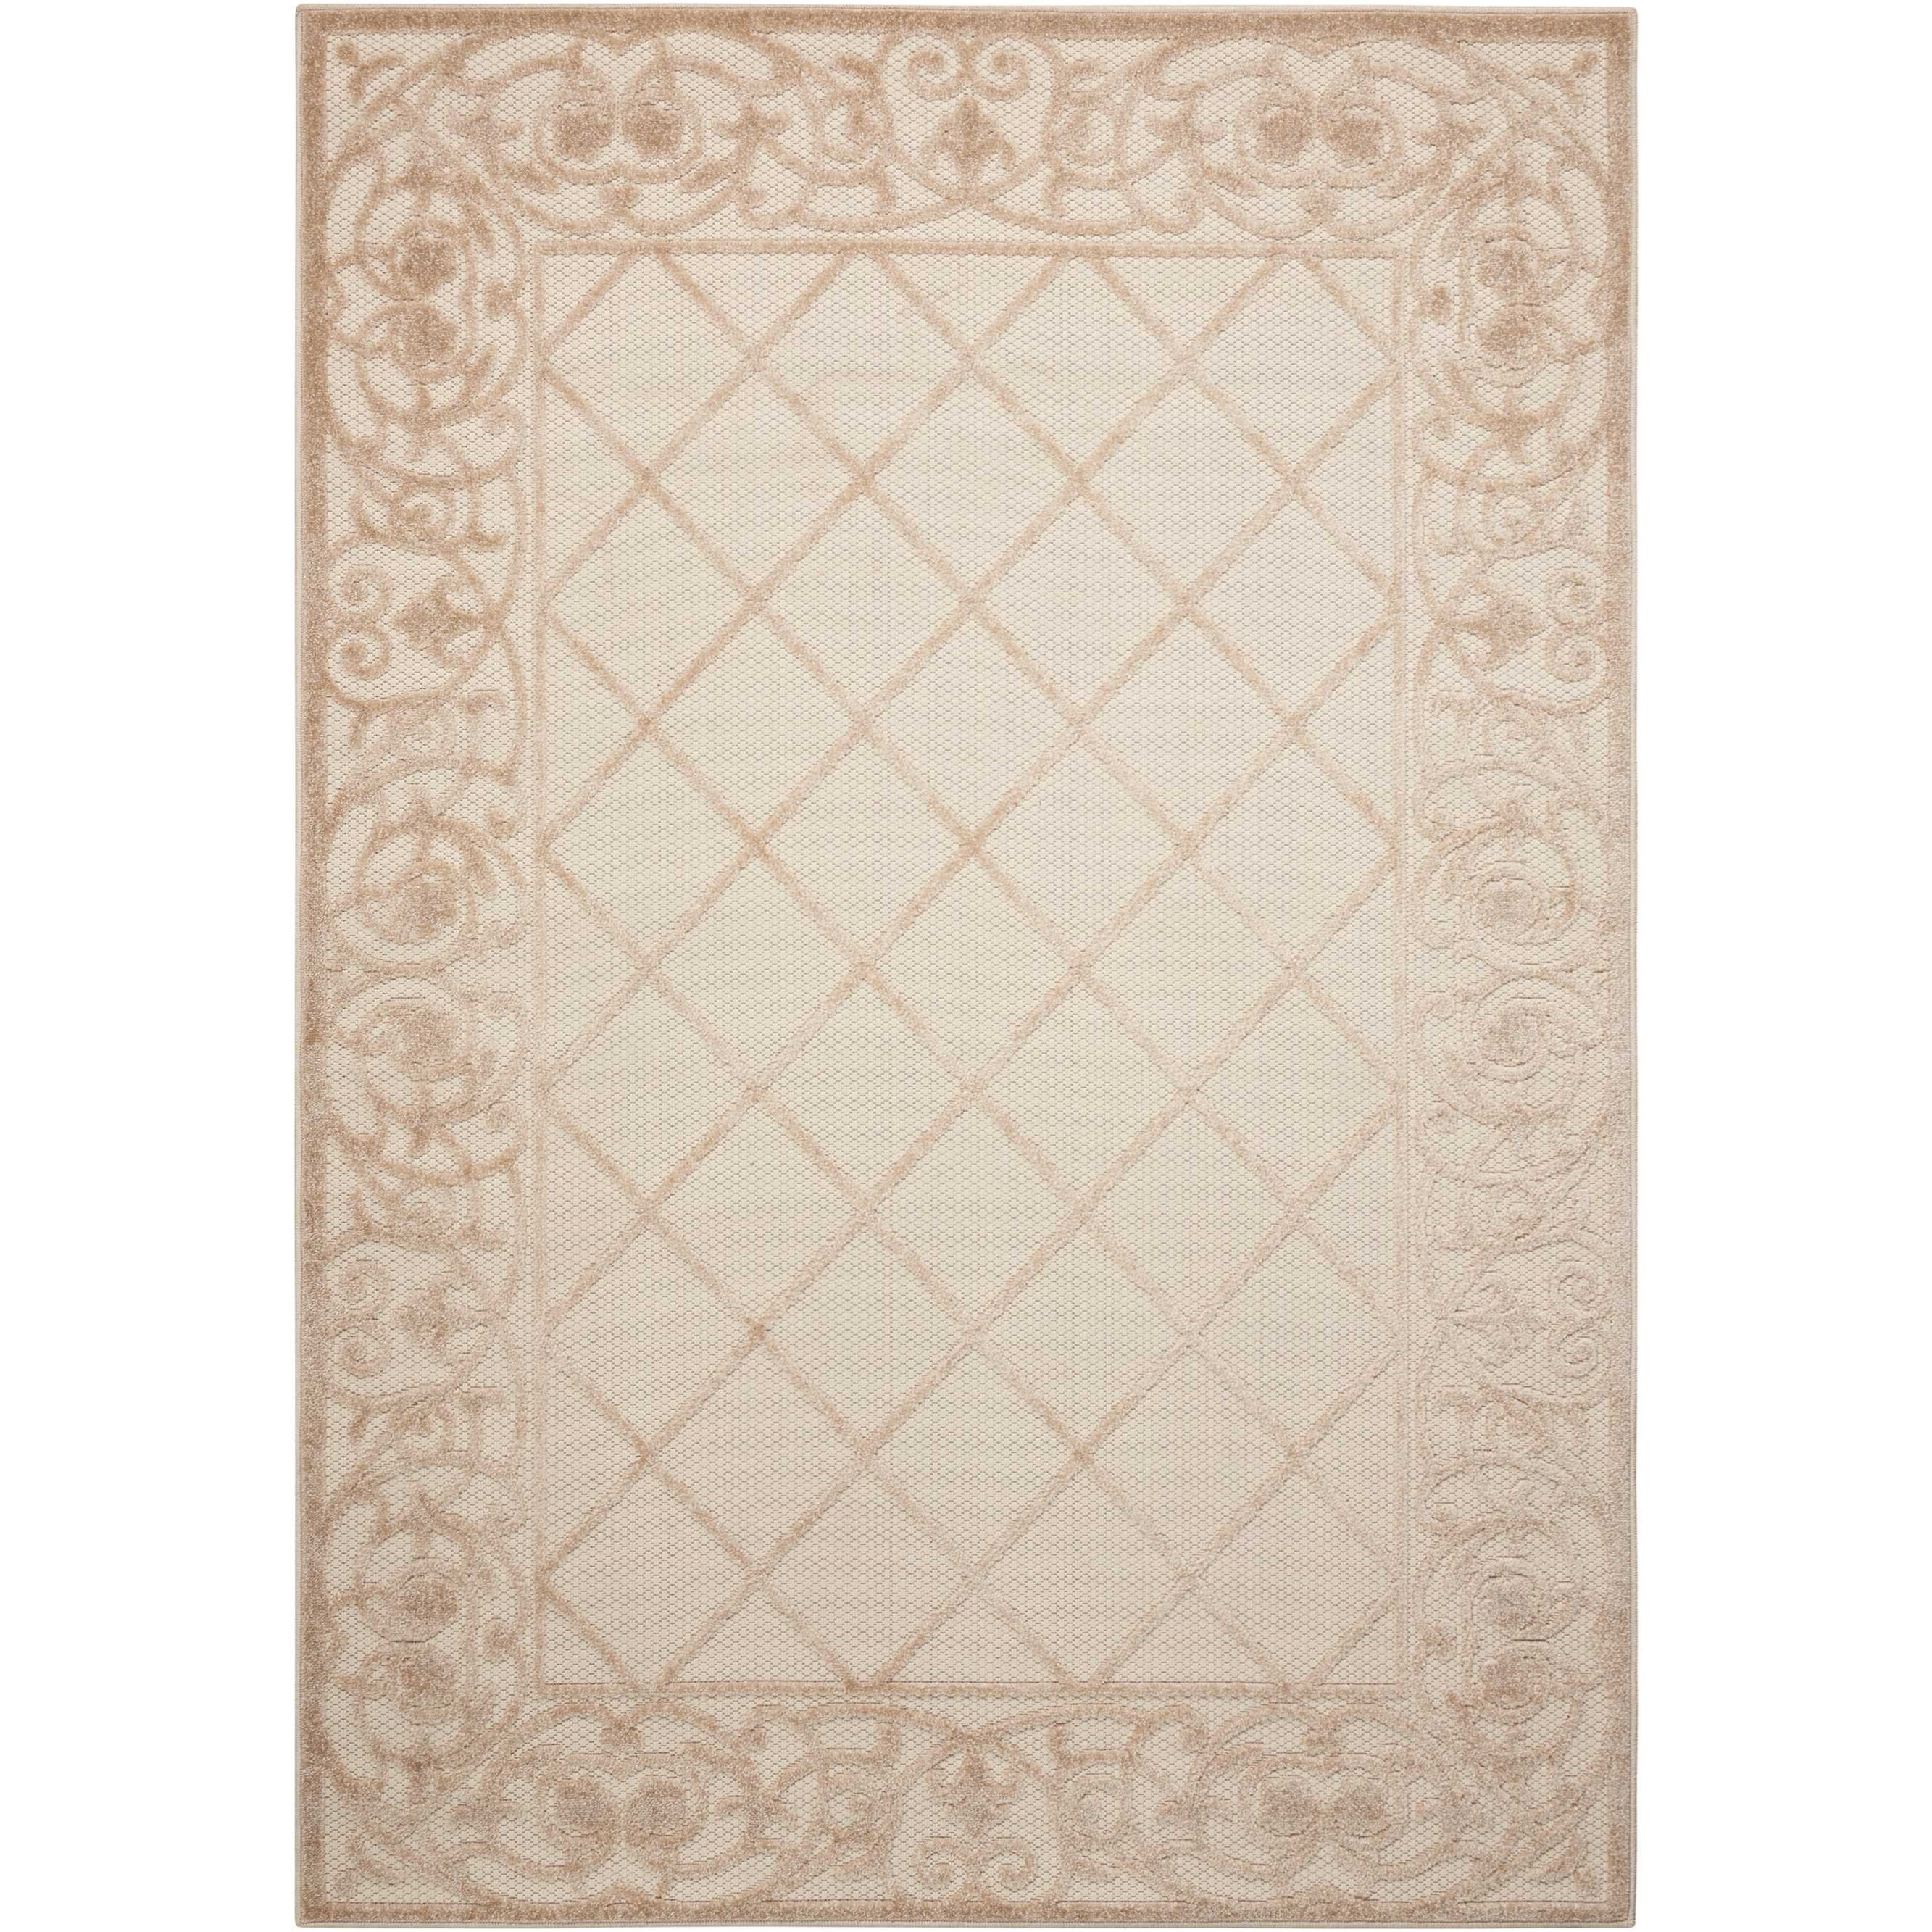 "Aloha 7'10"" X 10'6"" Cream Rug by Nourison at Home Collections Furniture"